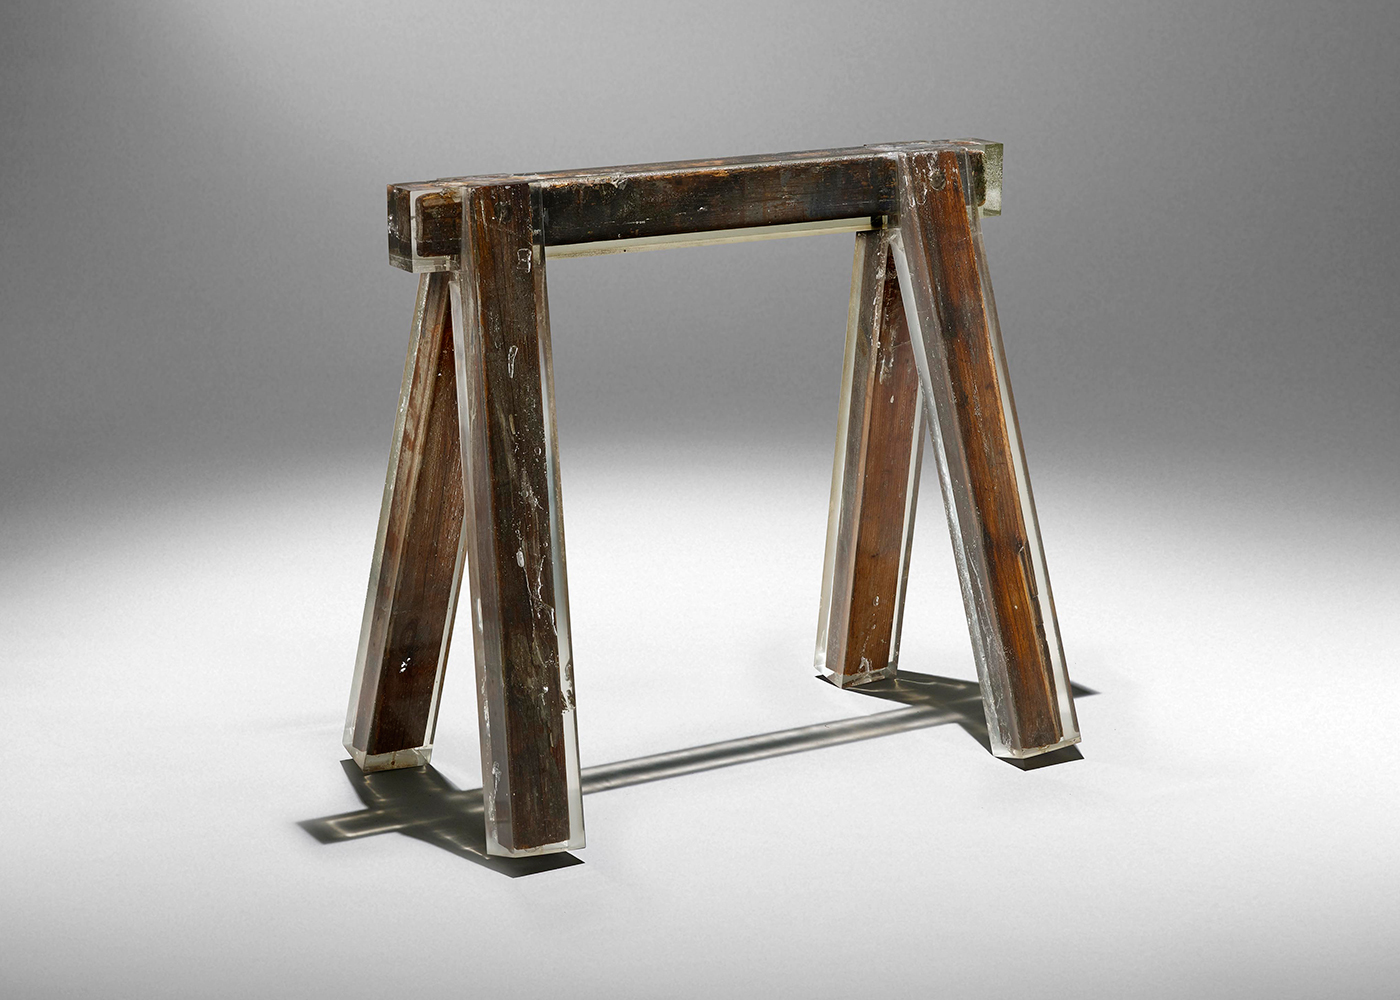 StudioNucleo_Souvenir-of-the-last-century-Sawhorse_low_1400